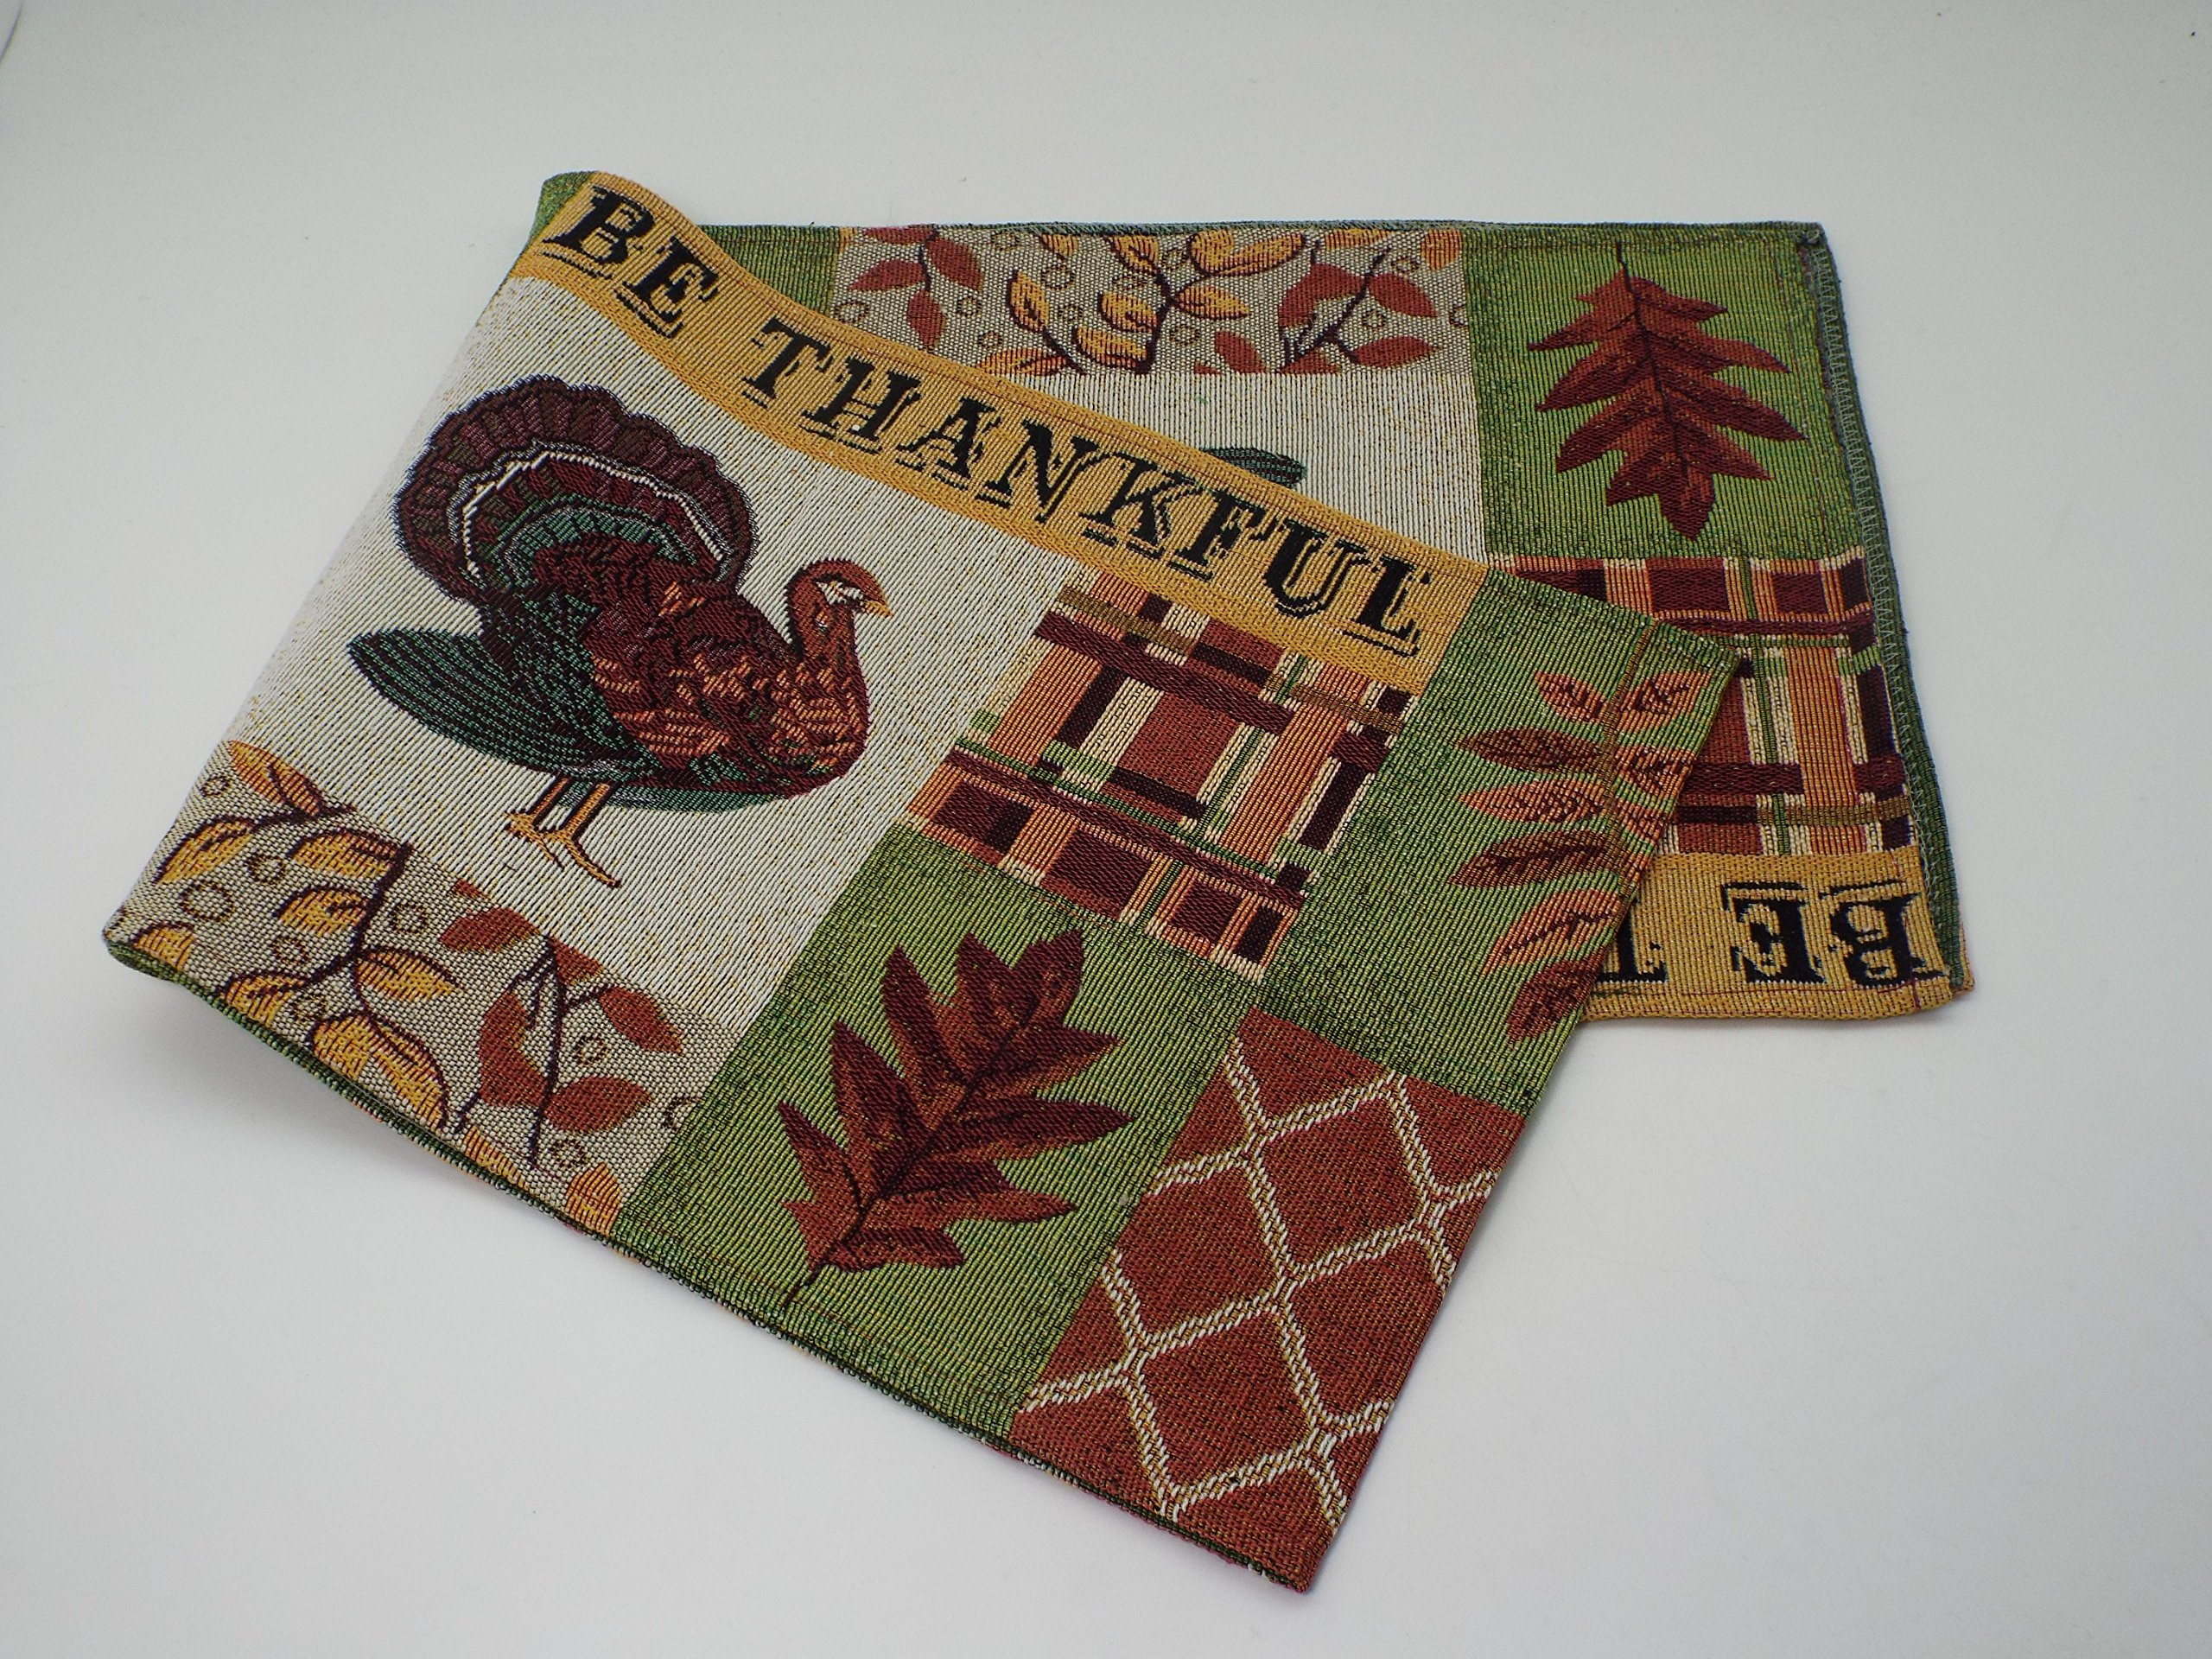 Bristola Home Designs Be Thankful Fall Table Runner - Tapestry - 13 x 70 inches